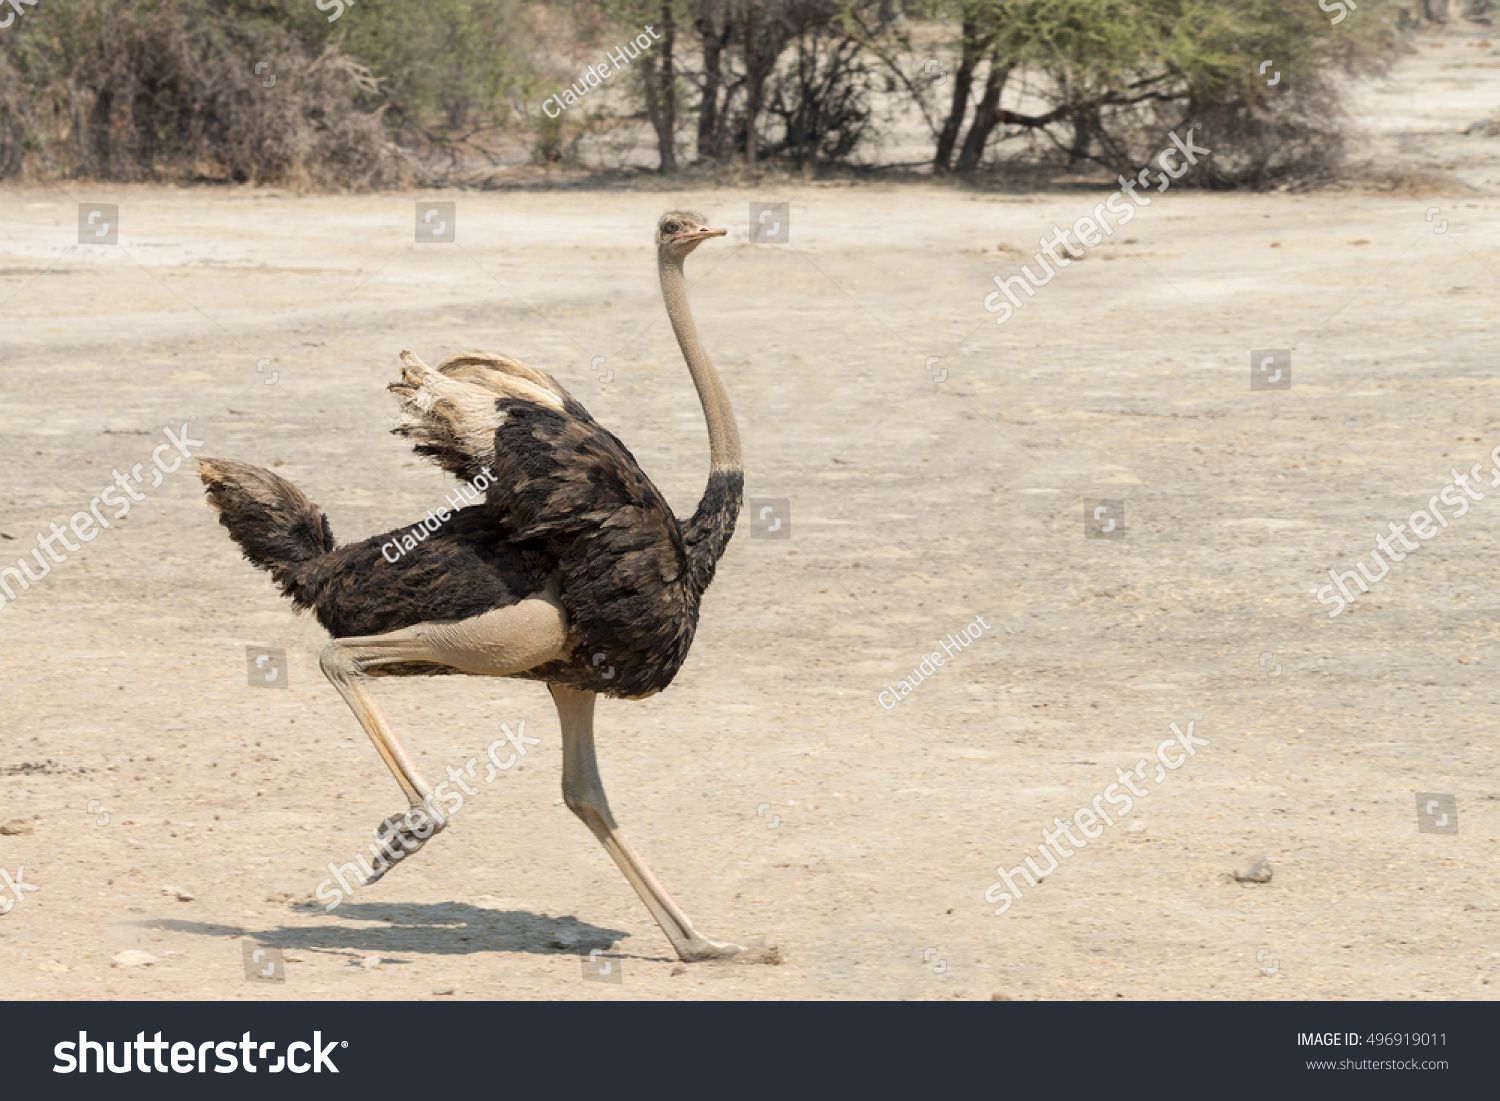 Young male ostrich (Struthio camelus) running in the Mahango Game Reserve within Bwabwata National Park Caprivi Strip, Namibia